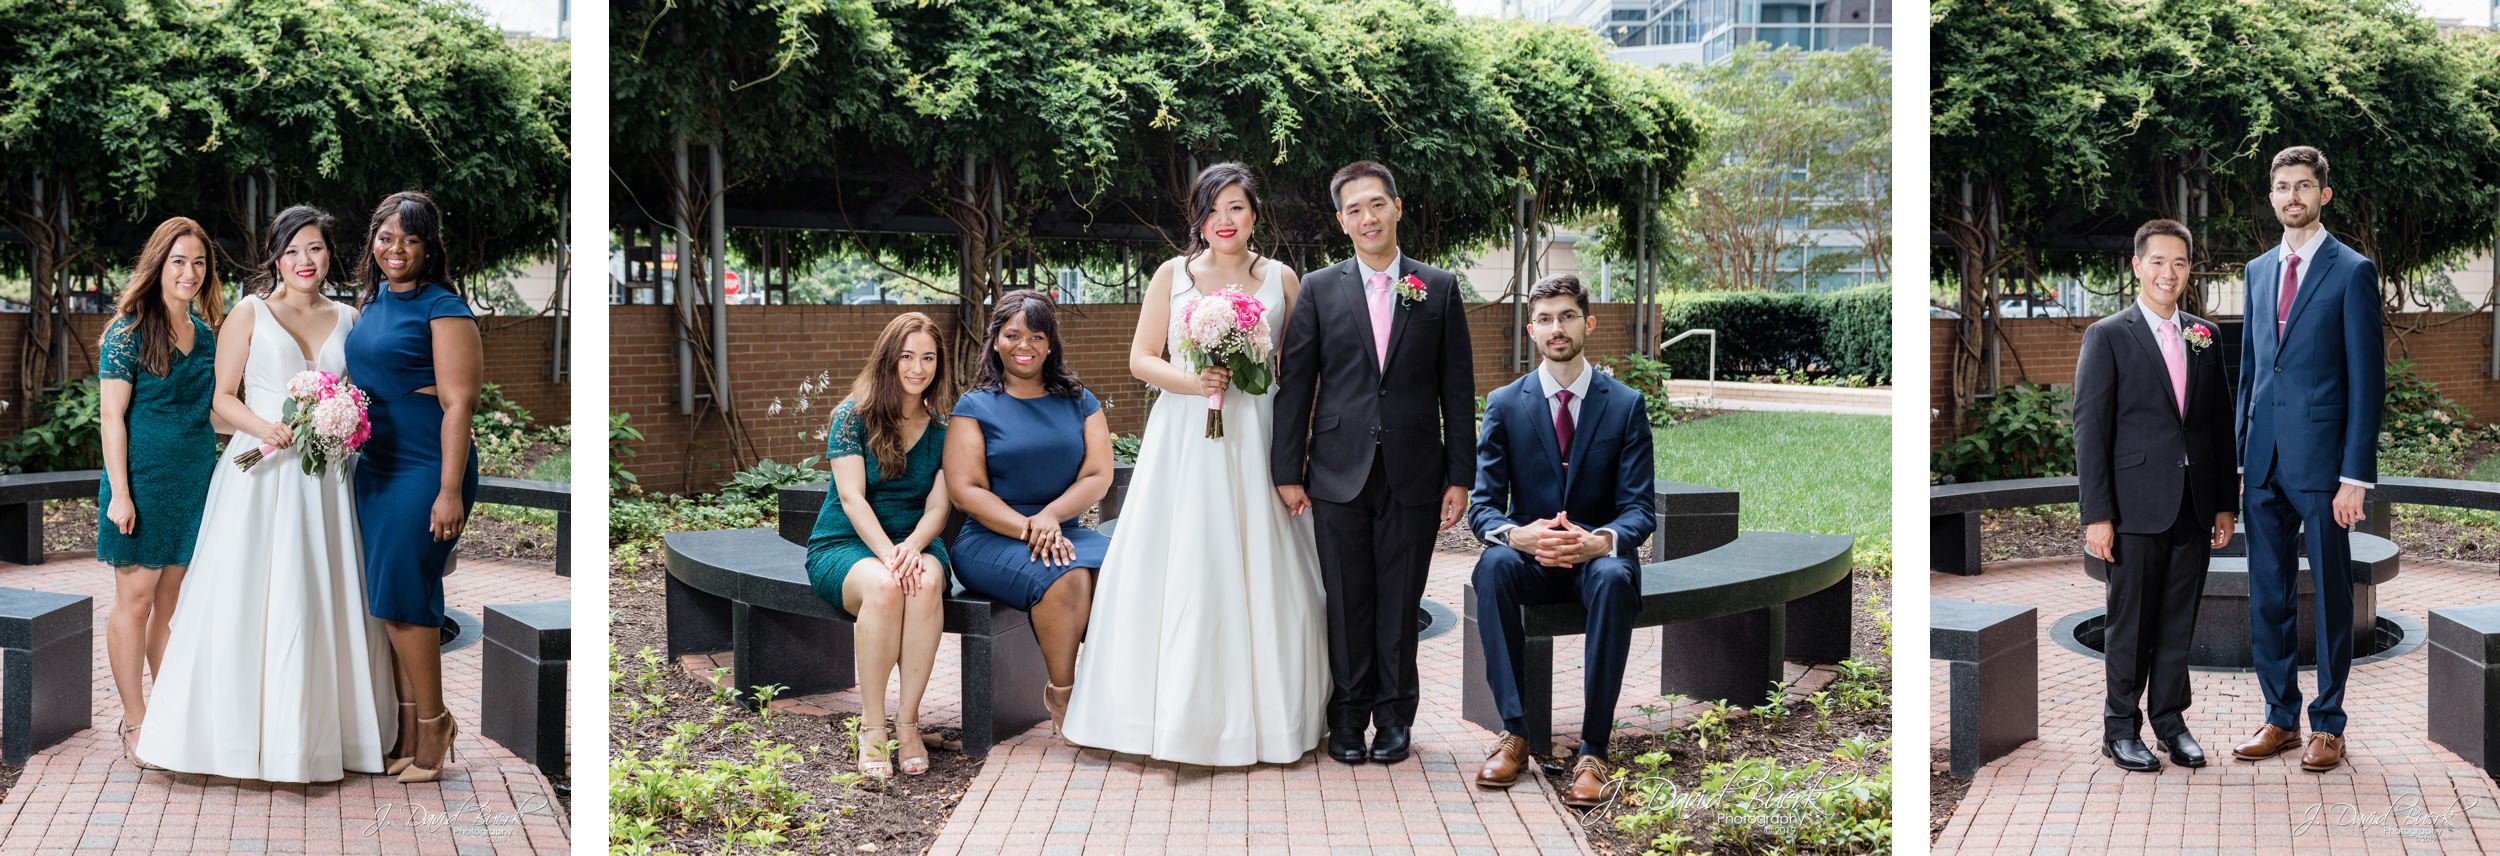 20190706 - David and Tiffany - Married 6.jpg